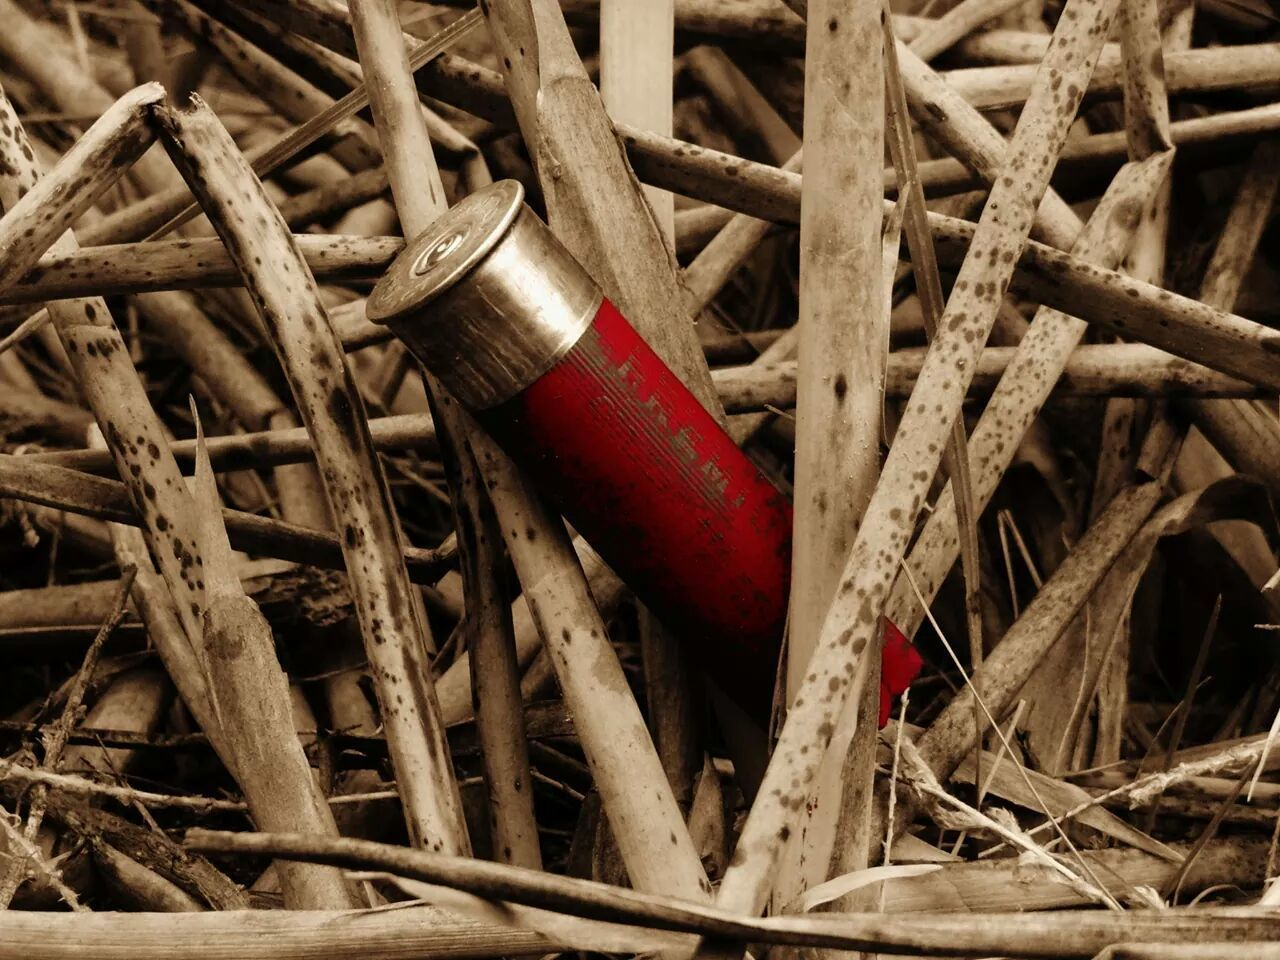 Red Metal Wood - Material No People Close-up Outdoors Day Hunting Shotgun Shells Birddog